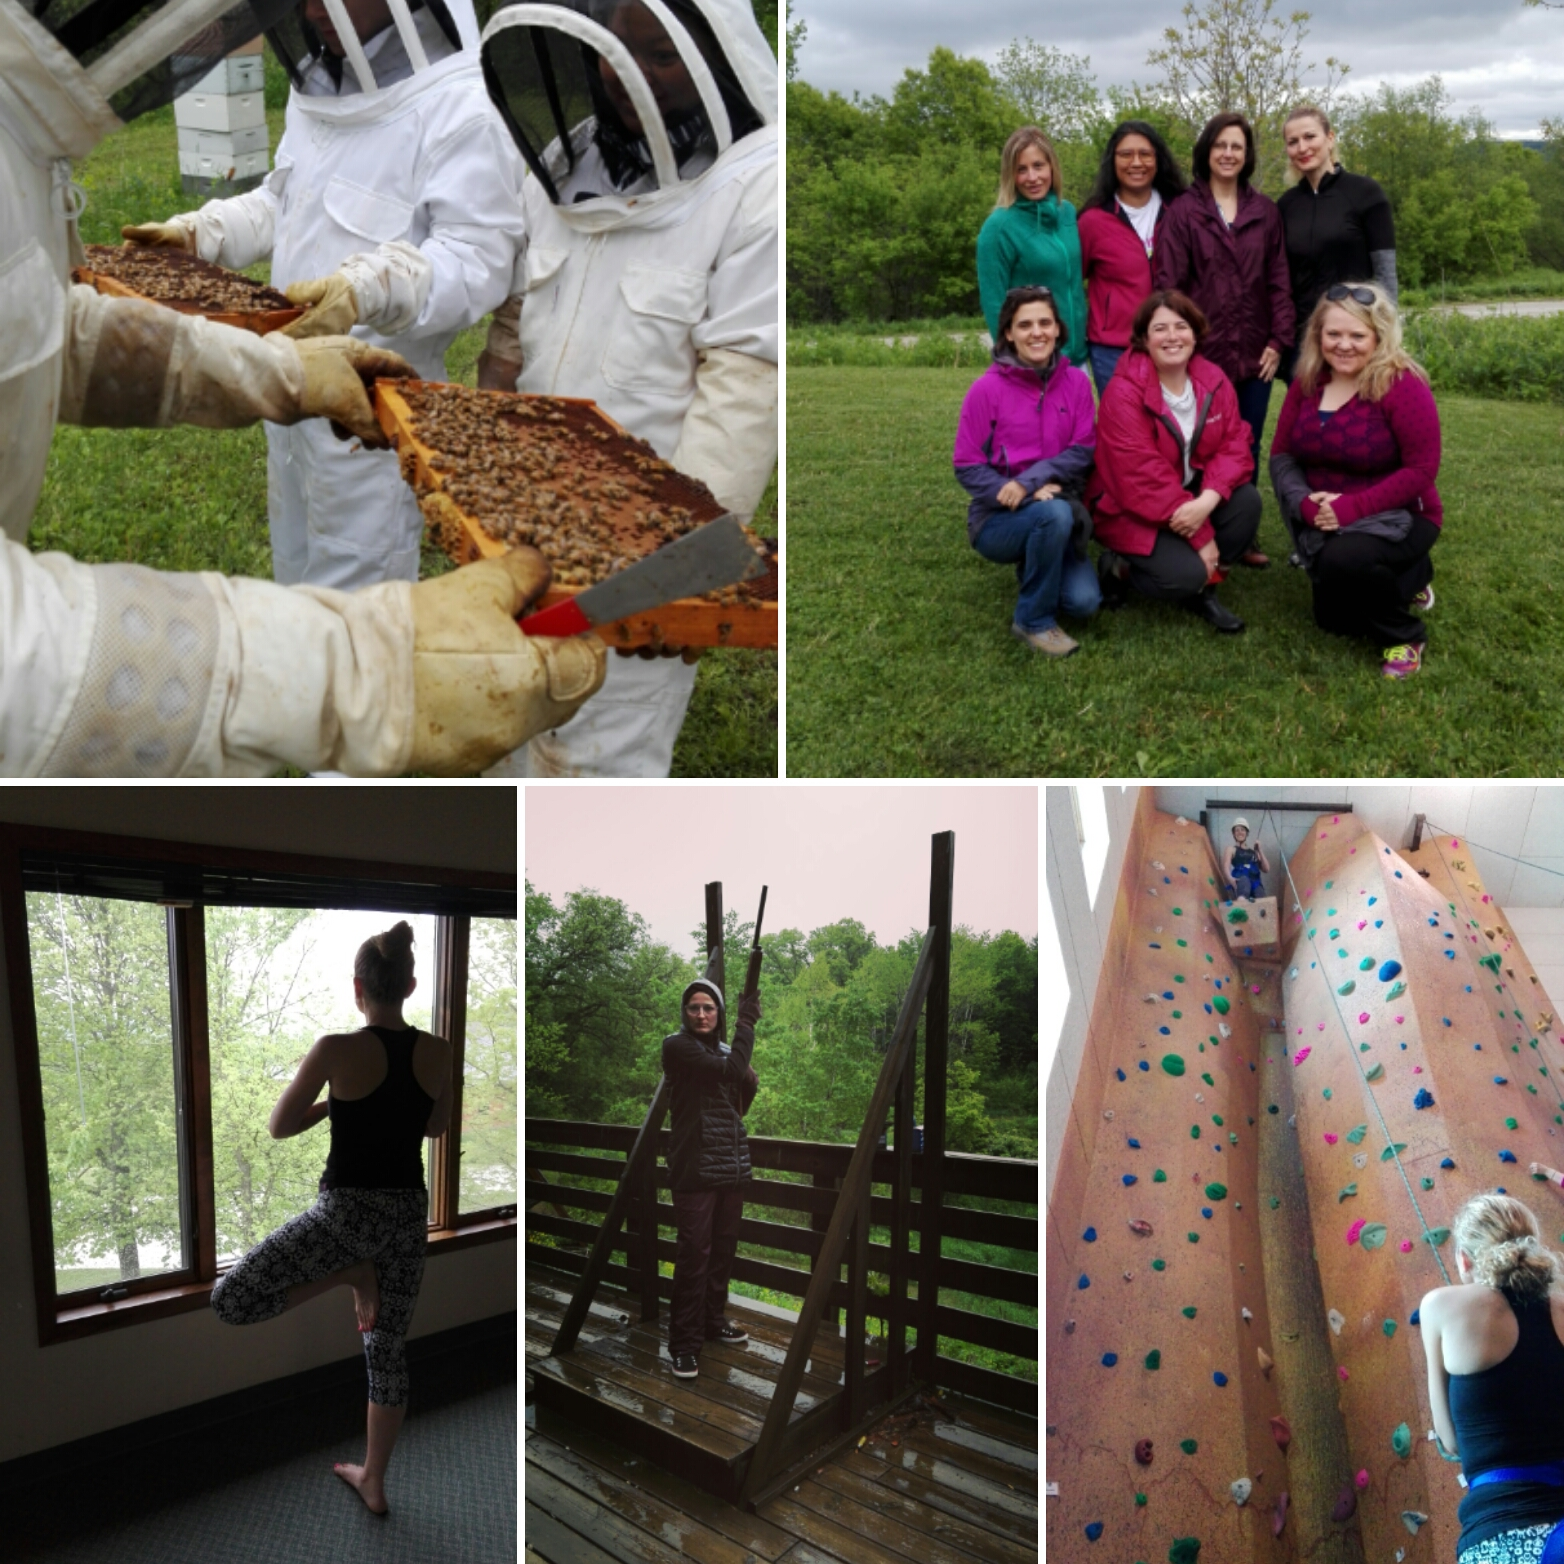 I Believe Have Talked About Going To The She Is Women In Outdoors Weekend At Eagle Bluff Lanesboro Mn On This Blog Before